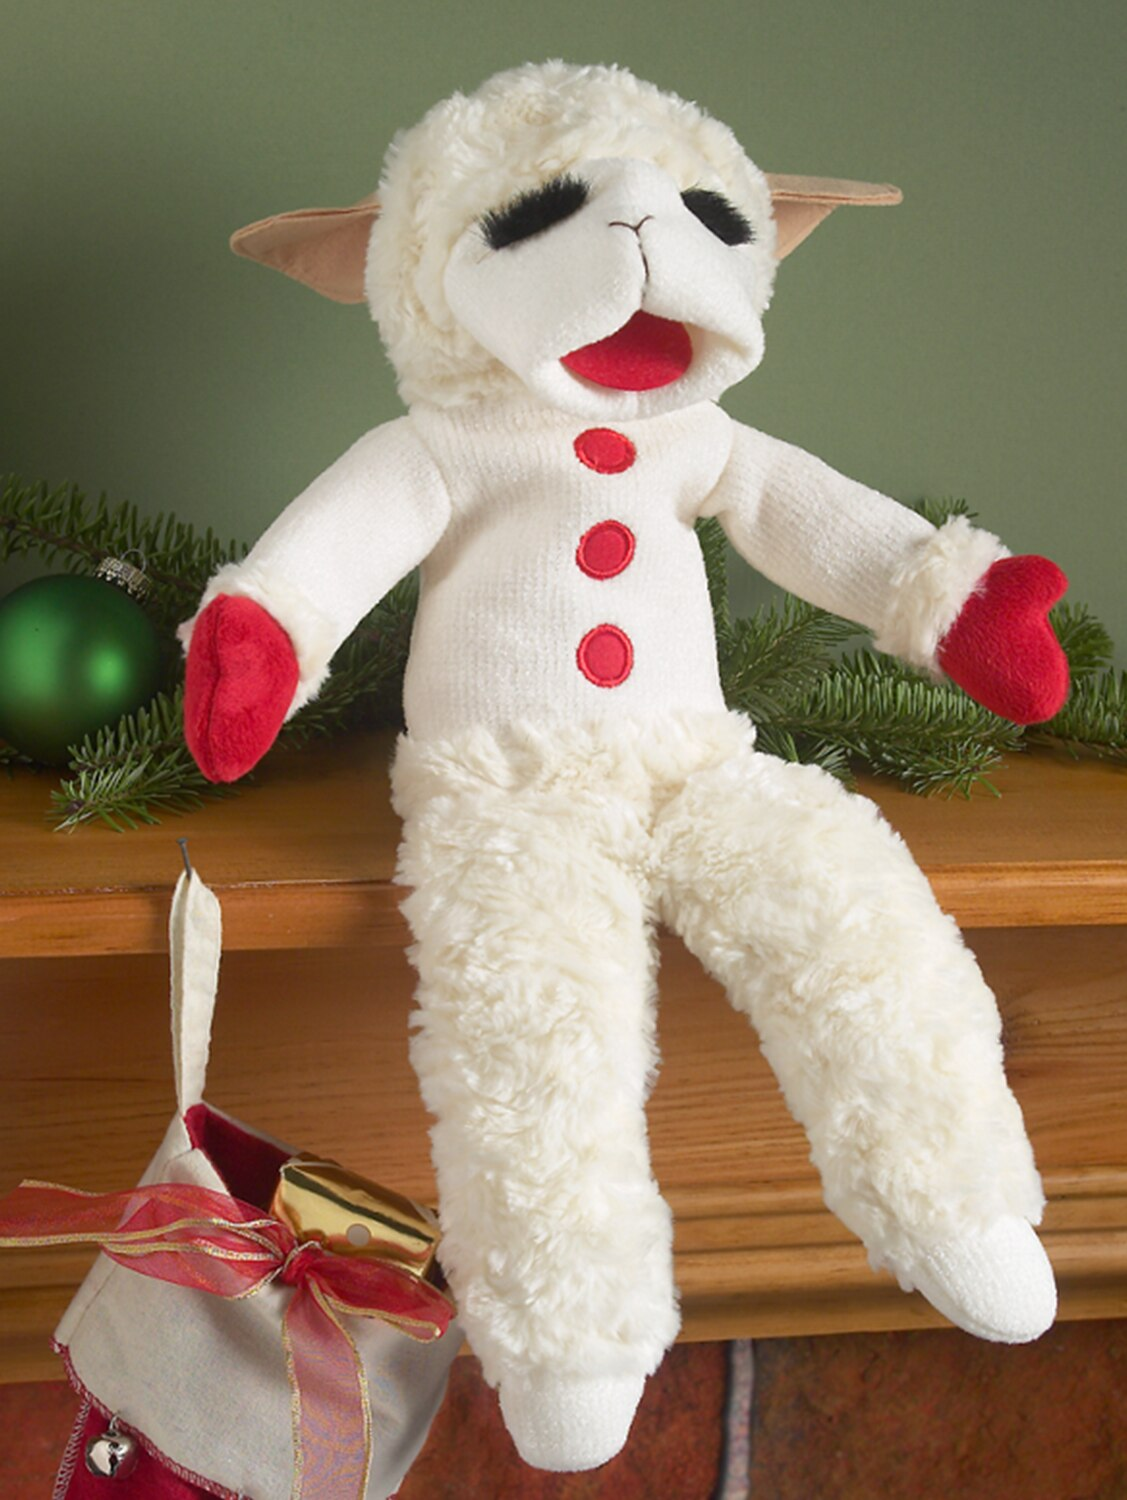 Lamb Chop Hand Puppet Available At The Vermont Country Store